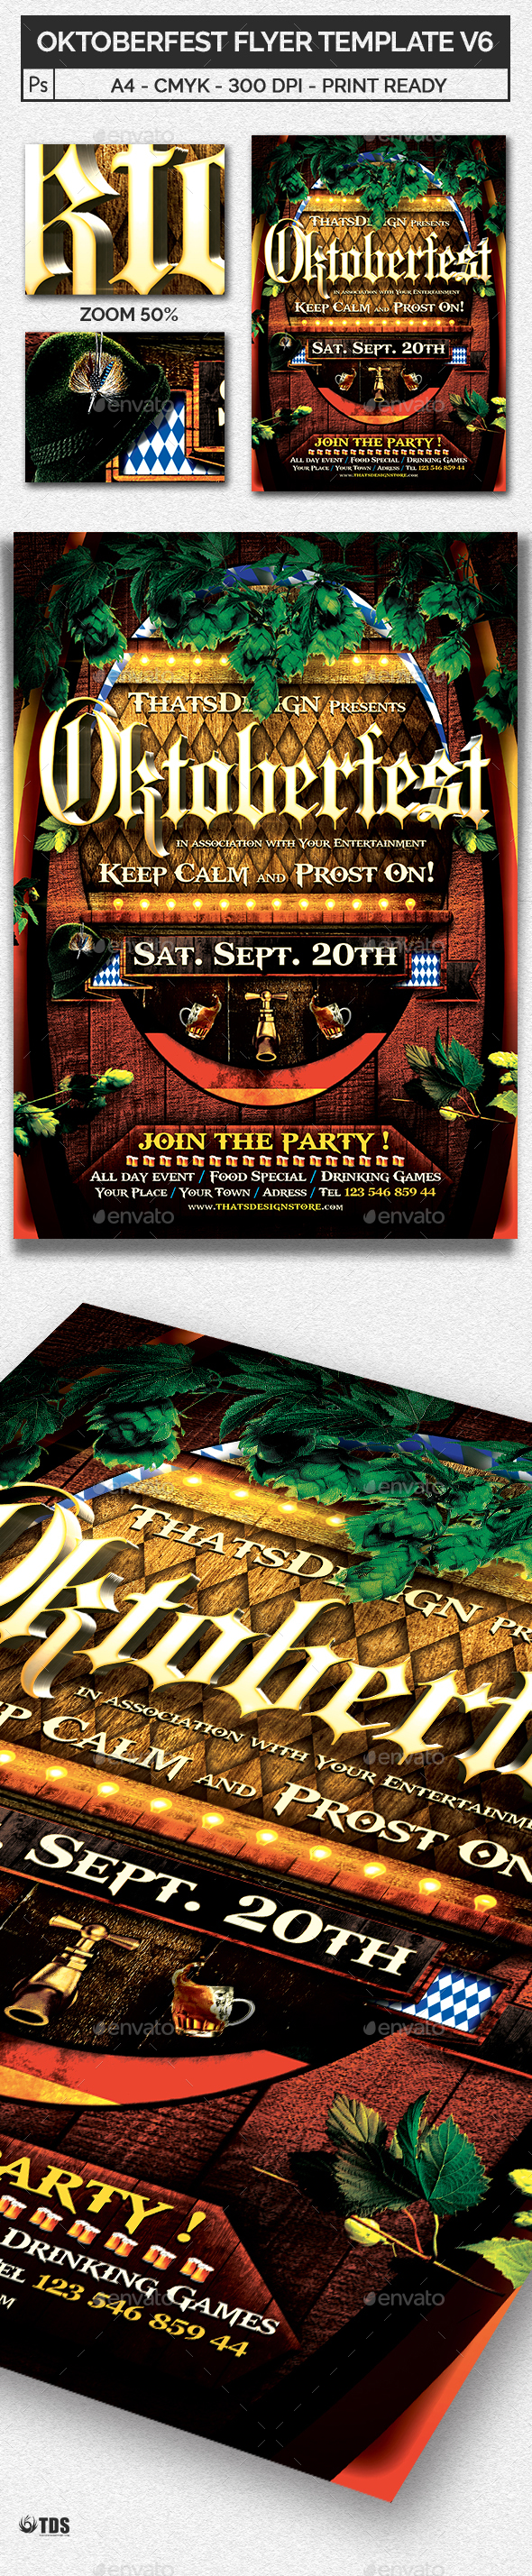 Oktoberfest Flyer Template V6 - Holidays Events